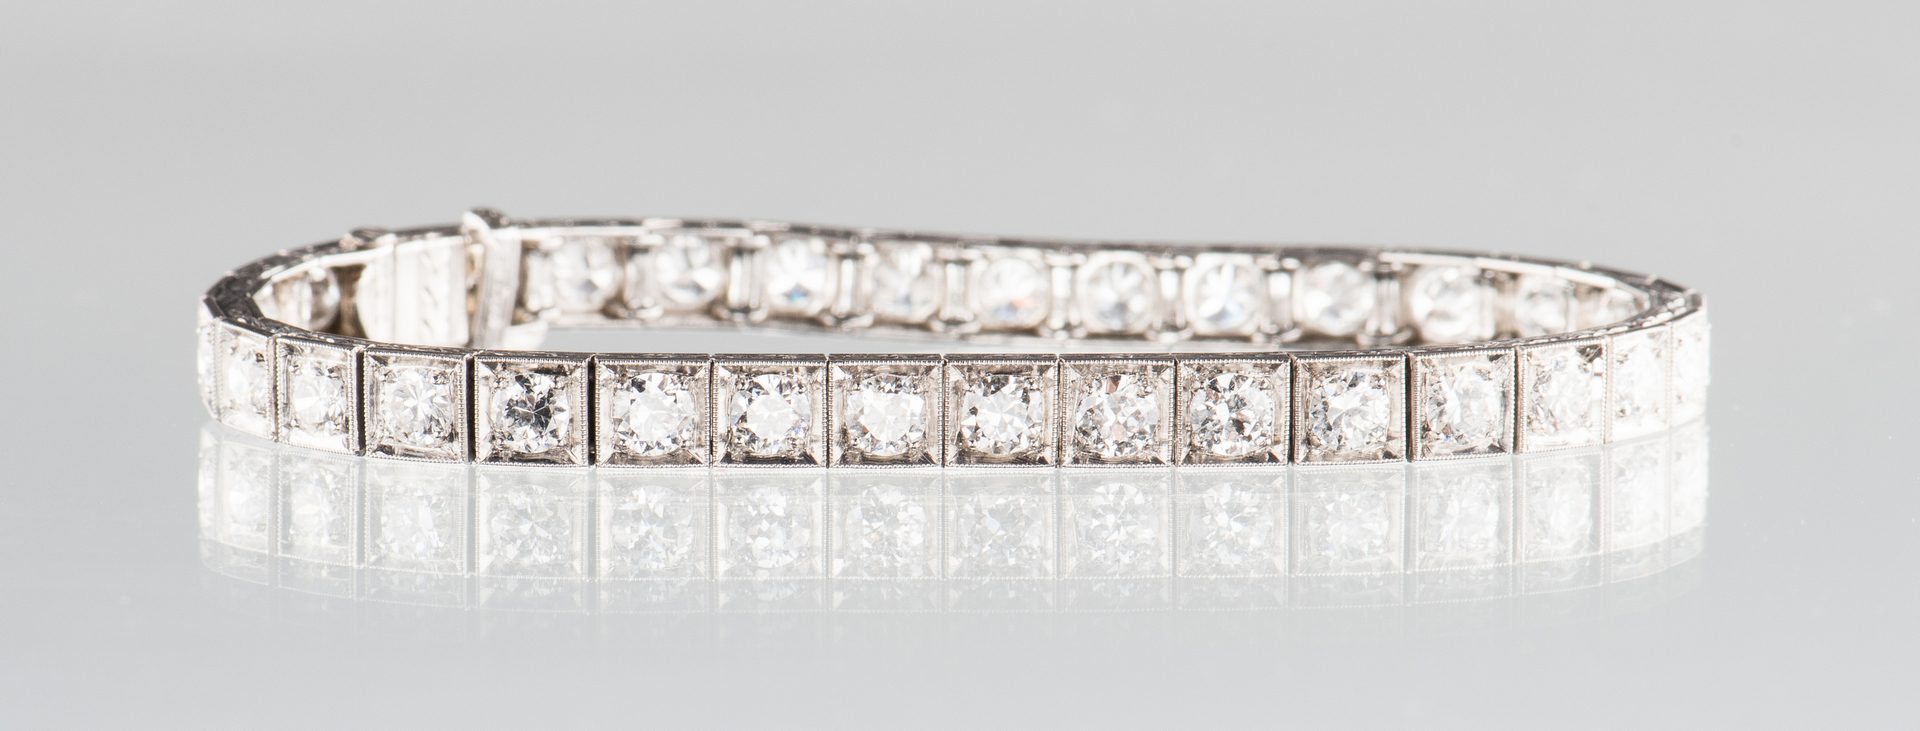 Lot 54: Marcus and Co. Diamond Bracelet, 6.8 cts.